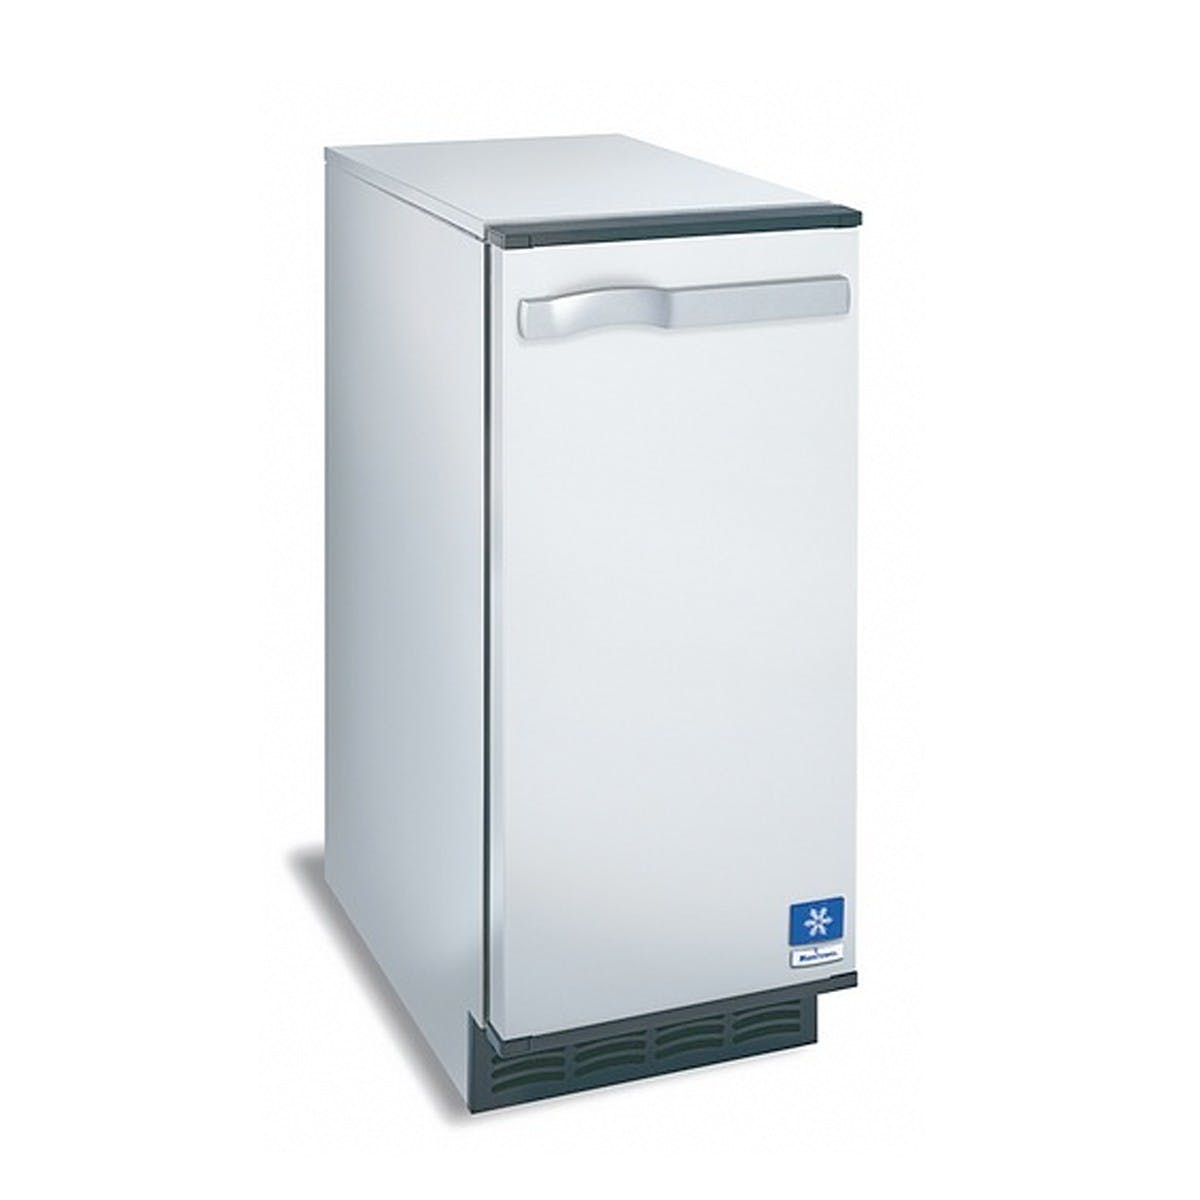 Manitowoc Ice SM-50A Undercounter Air Cooled Ice Cube Machine - 53 lb Ice machine sold by Mission Restaurant Supply